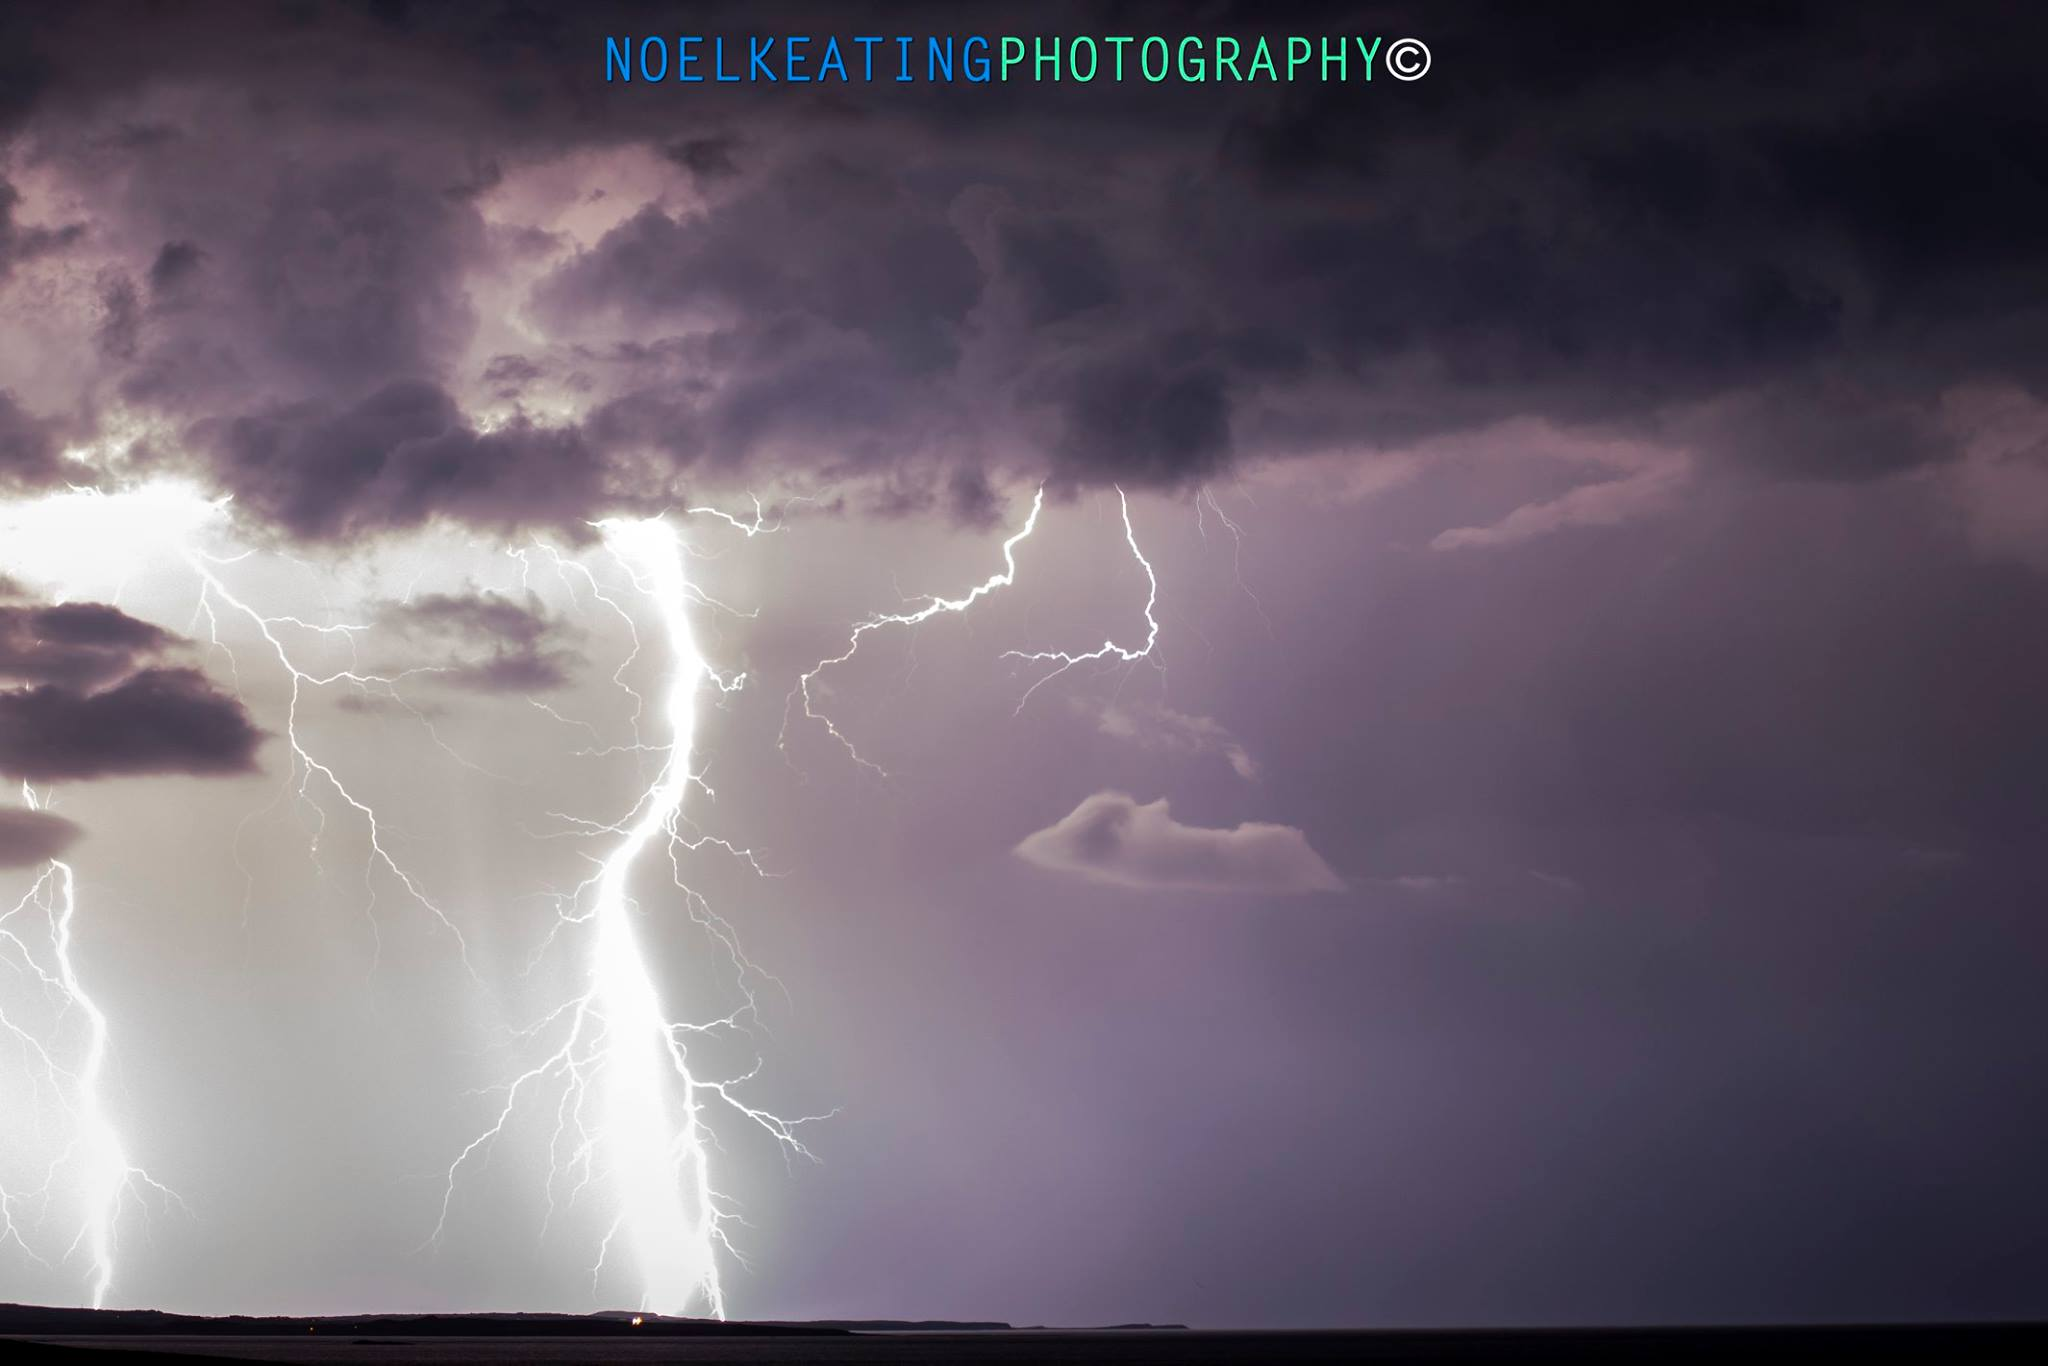 Lightning photographed over Donegal, Ireland by the talented  Noel Keating Photography